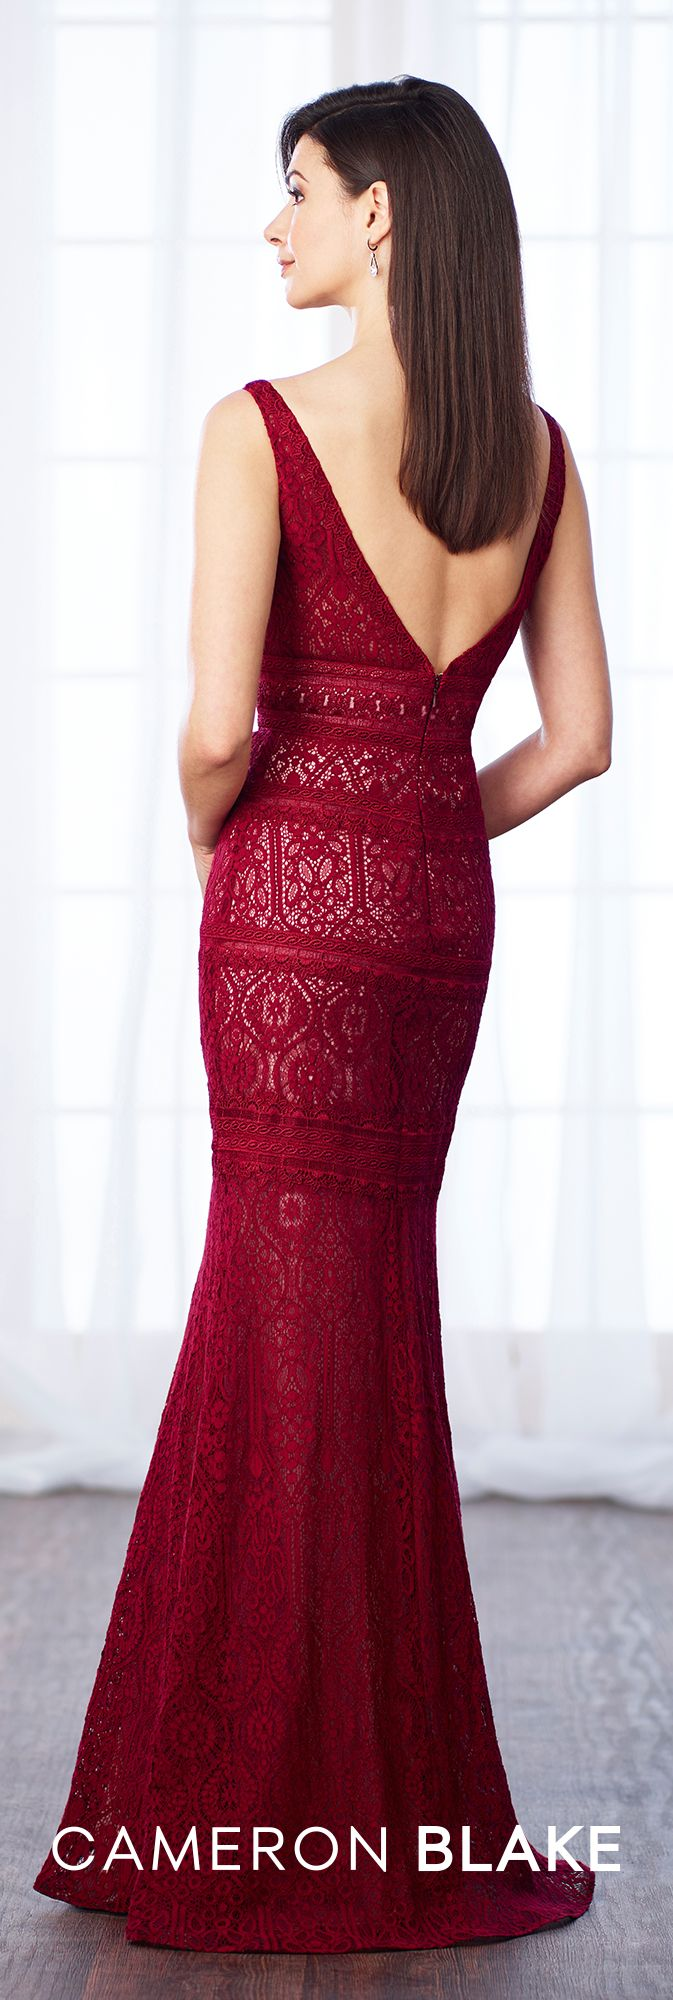 brand logo 217631  Sleeveless lace and chiffon trumpet gown features a curved deep V-neckline with illusion modesty panel, dropped waistline, deep V-back. Matching shawl included.